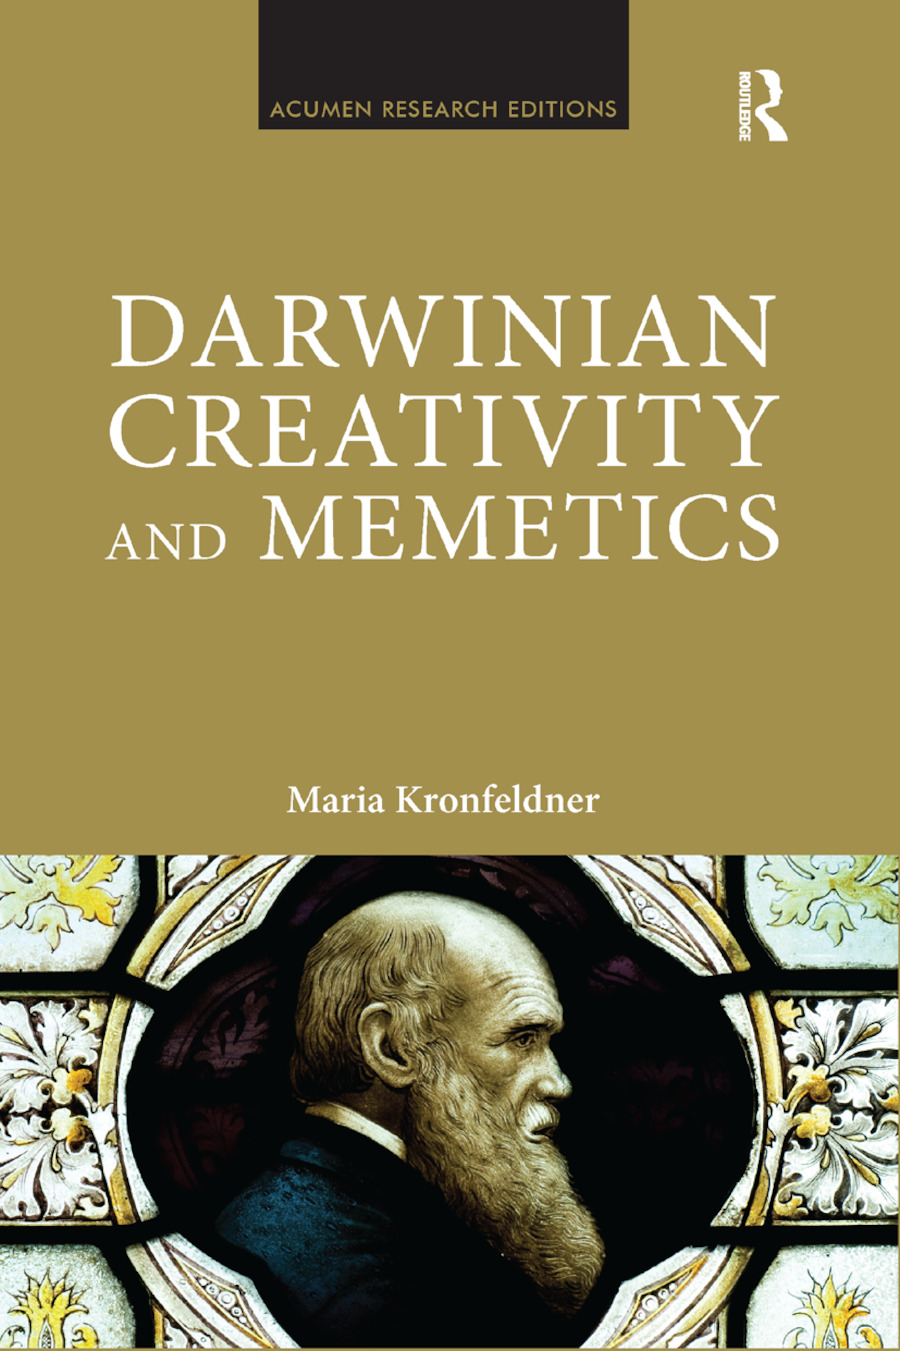 Darwinian Creativity and Memetics